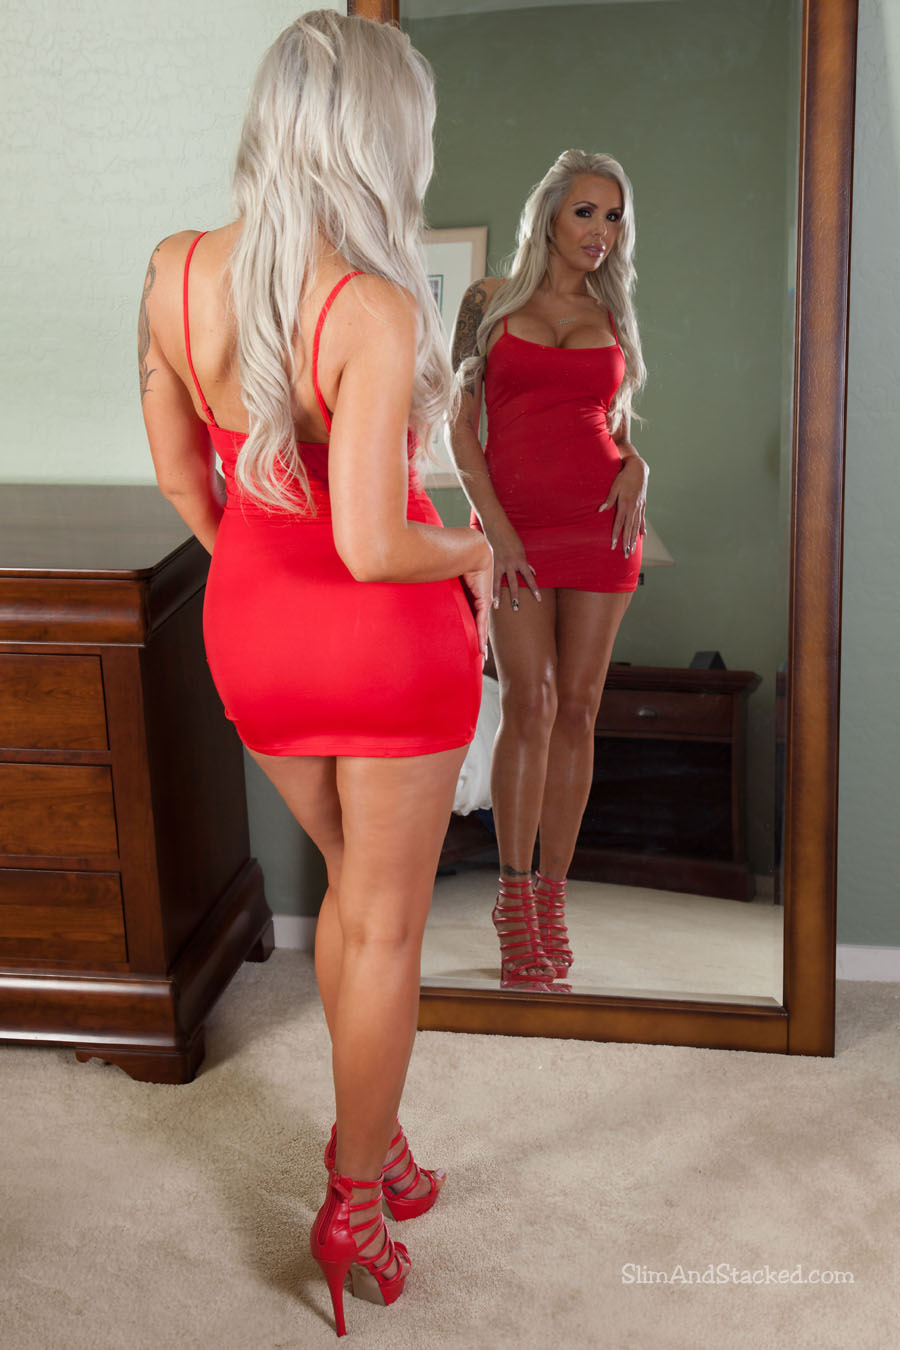 Mirror, mirror, on the wall.  Is Nina Elle sexy as hell in red, or what?!  Helping us to continue our mirror theme is the always alluring Nina, looking quite provocative in a tight red dress.  And as hot as Nina looks in these pics, image what happens to the room temperature as Nina teases that little number off?  Find out for sure by owning Nina Elle - Red Dress Mirror, in stunning 3000-pixel resolution.  Contact dezertimagez@gmail.com for set pricing.